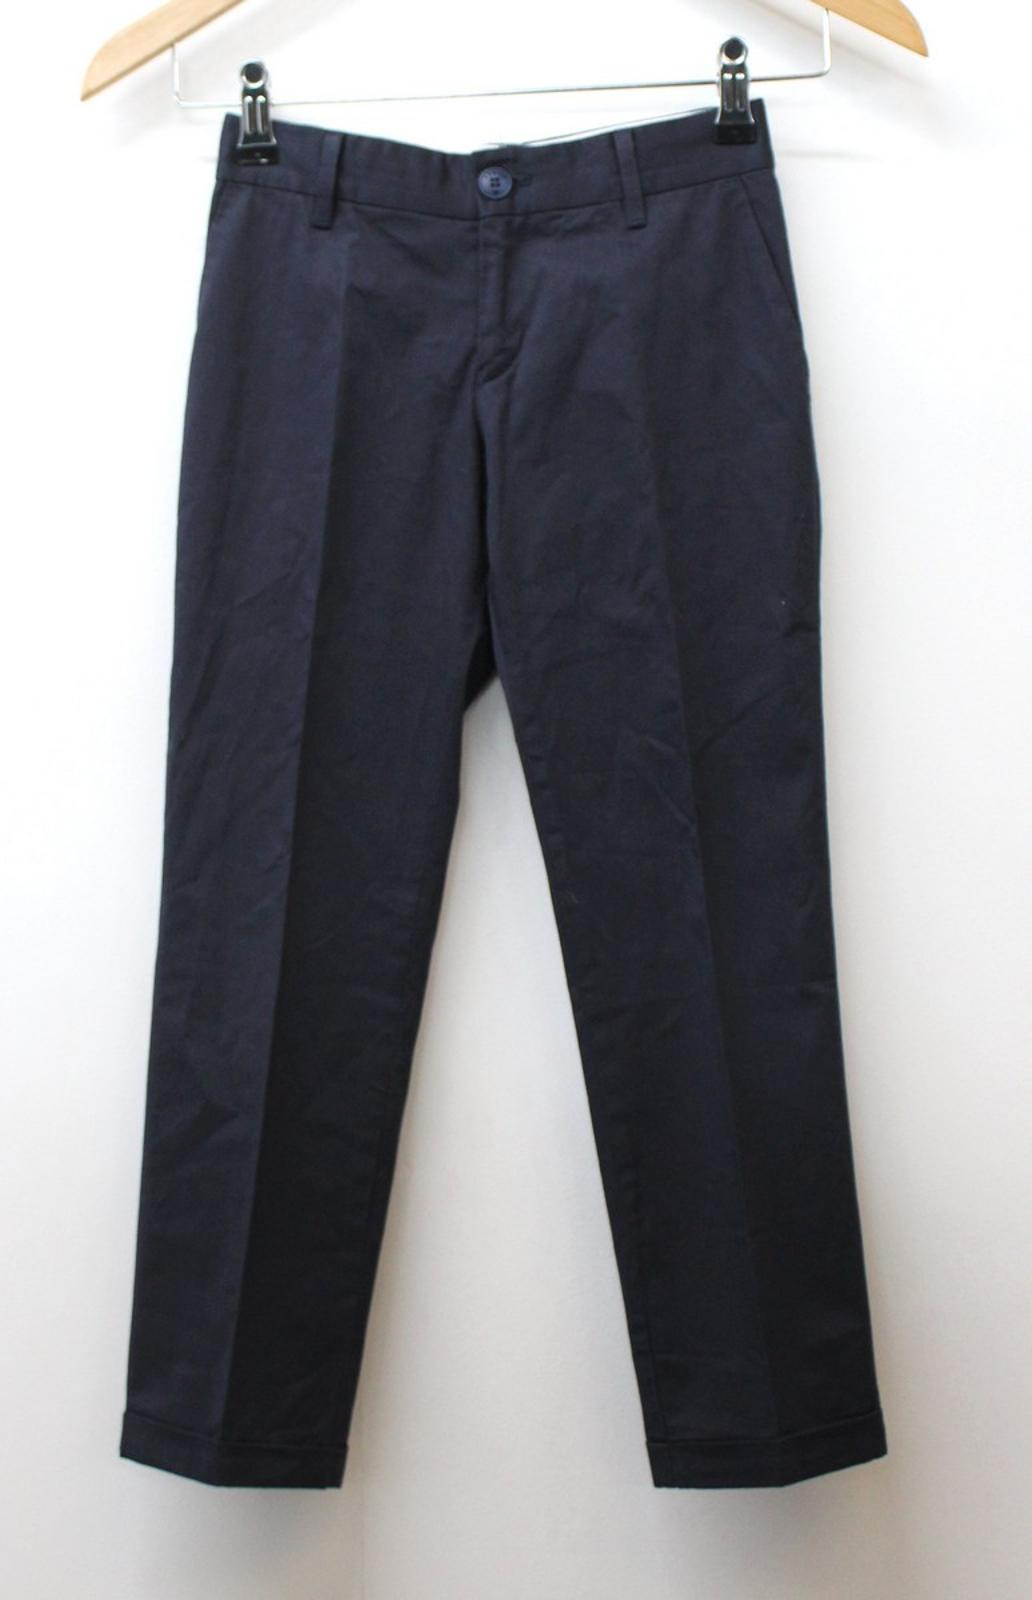 ARMANI Boys Navy Blue Cotton Blend Pleated Front Formal Trousers Size 7 Yrs. 2